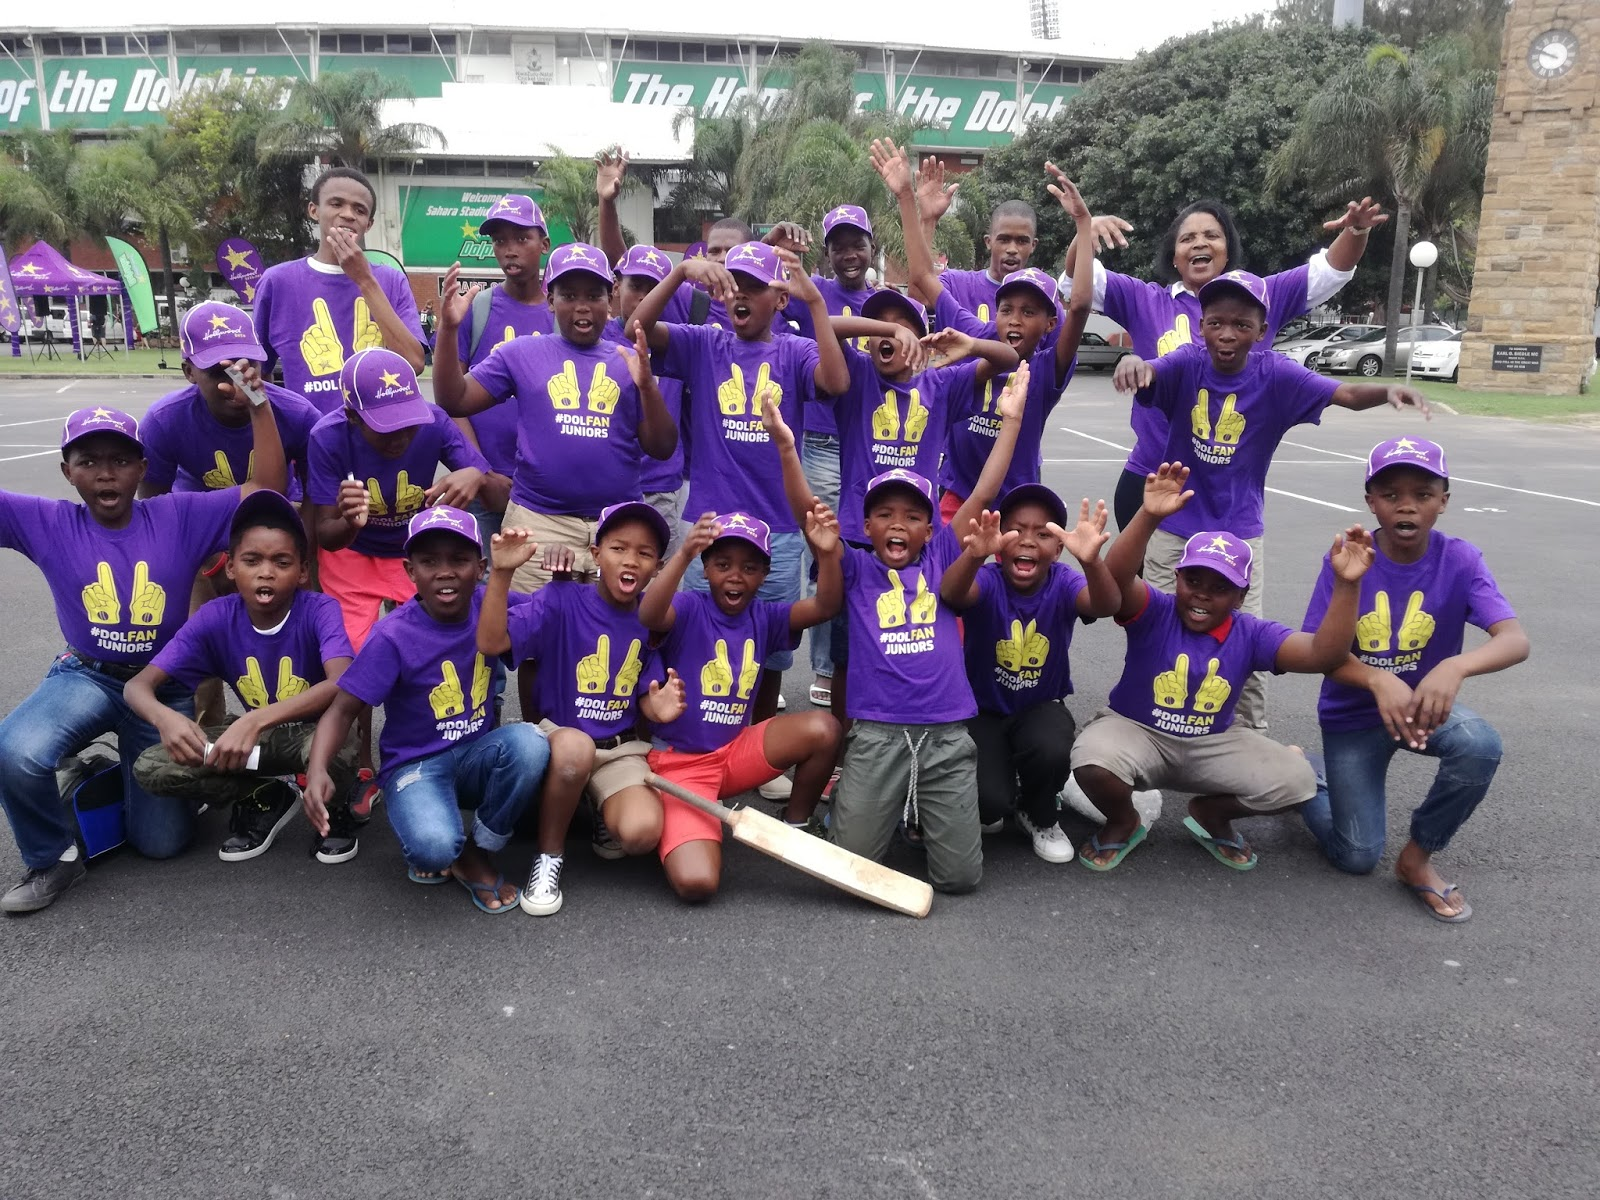 KwaDabeka Cricket Club - Hollywoodbets Cricket Club Development Programme - Kingsmead - CSA T20 Challenge